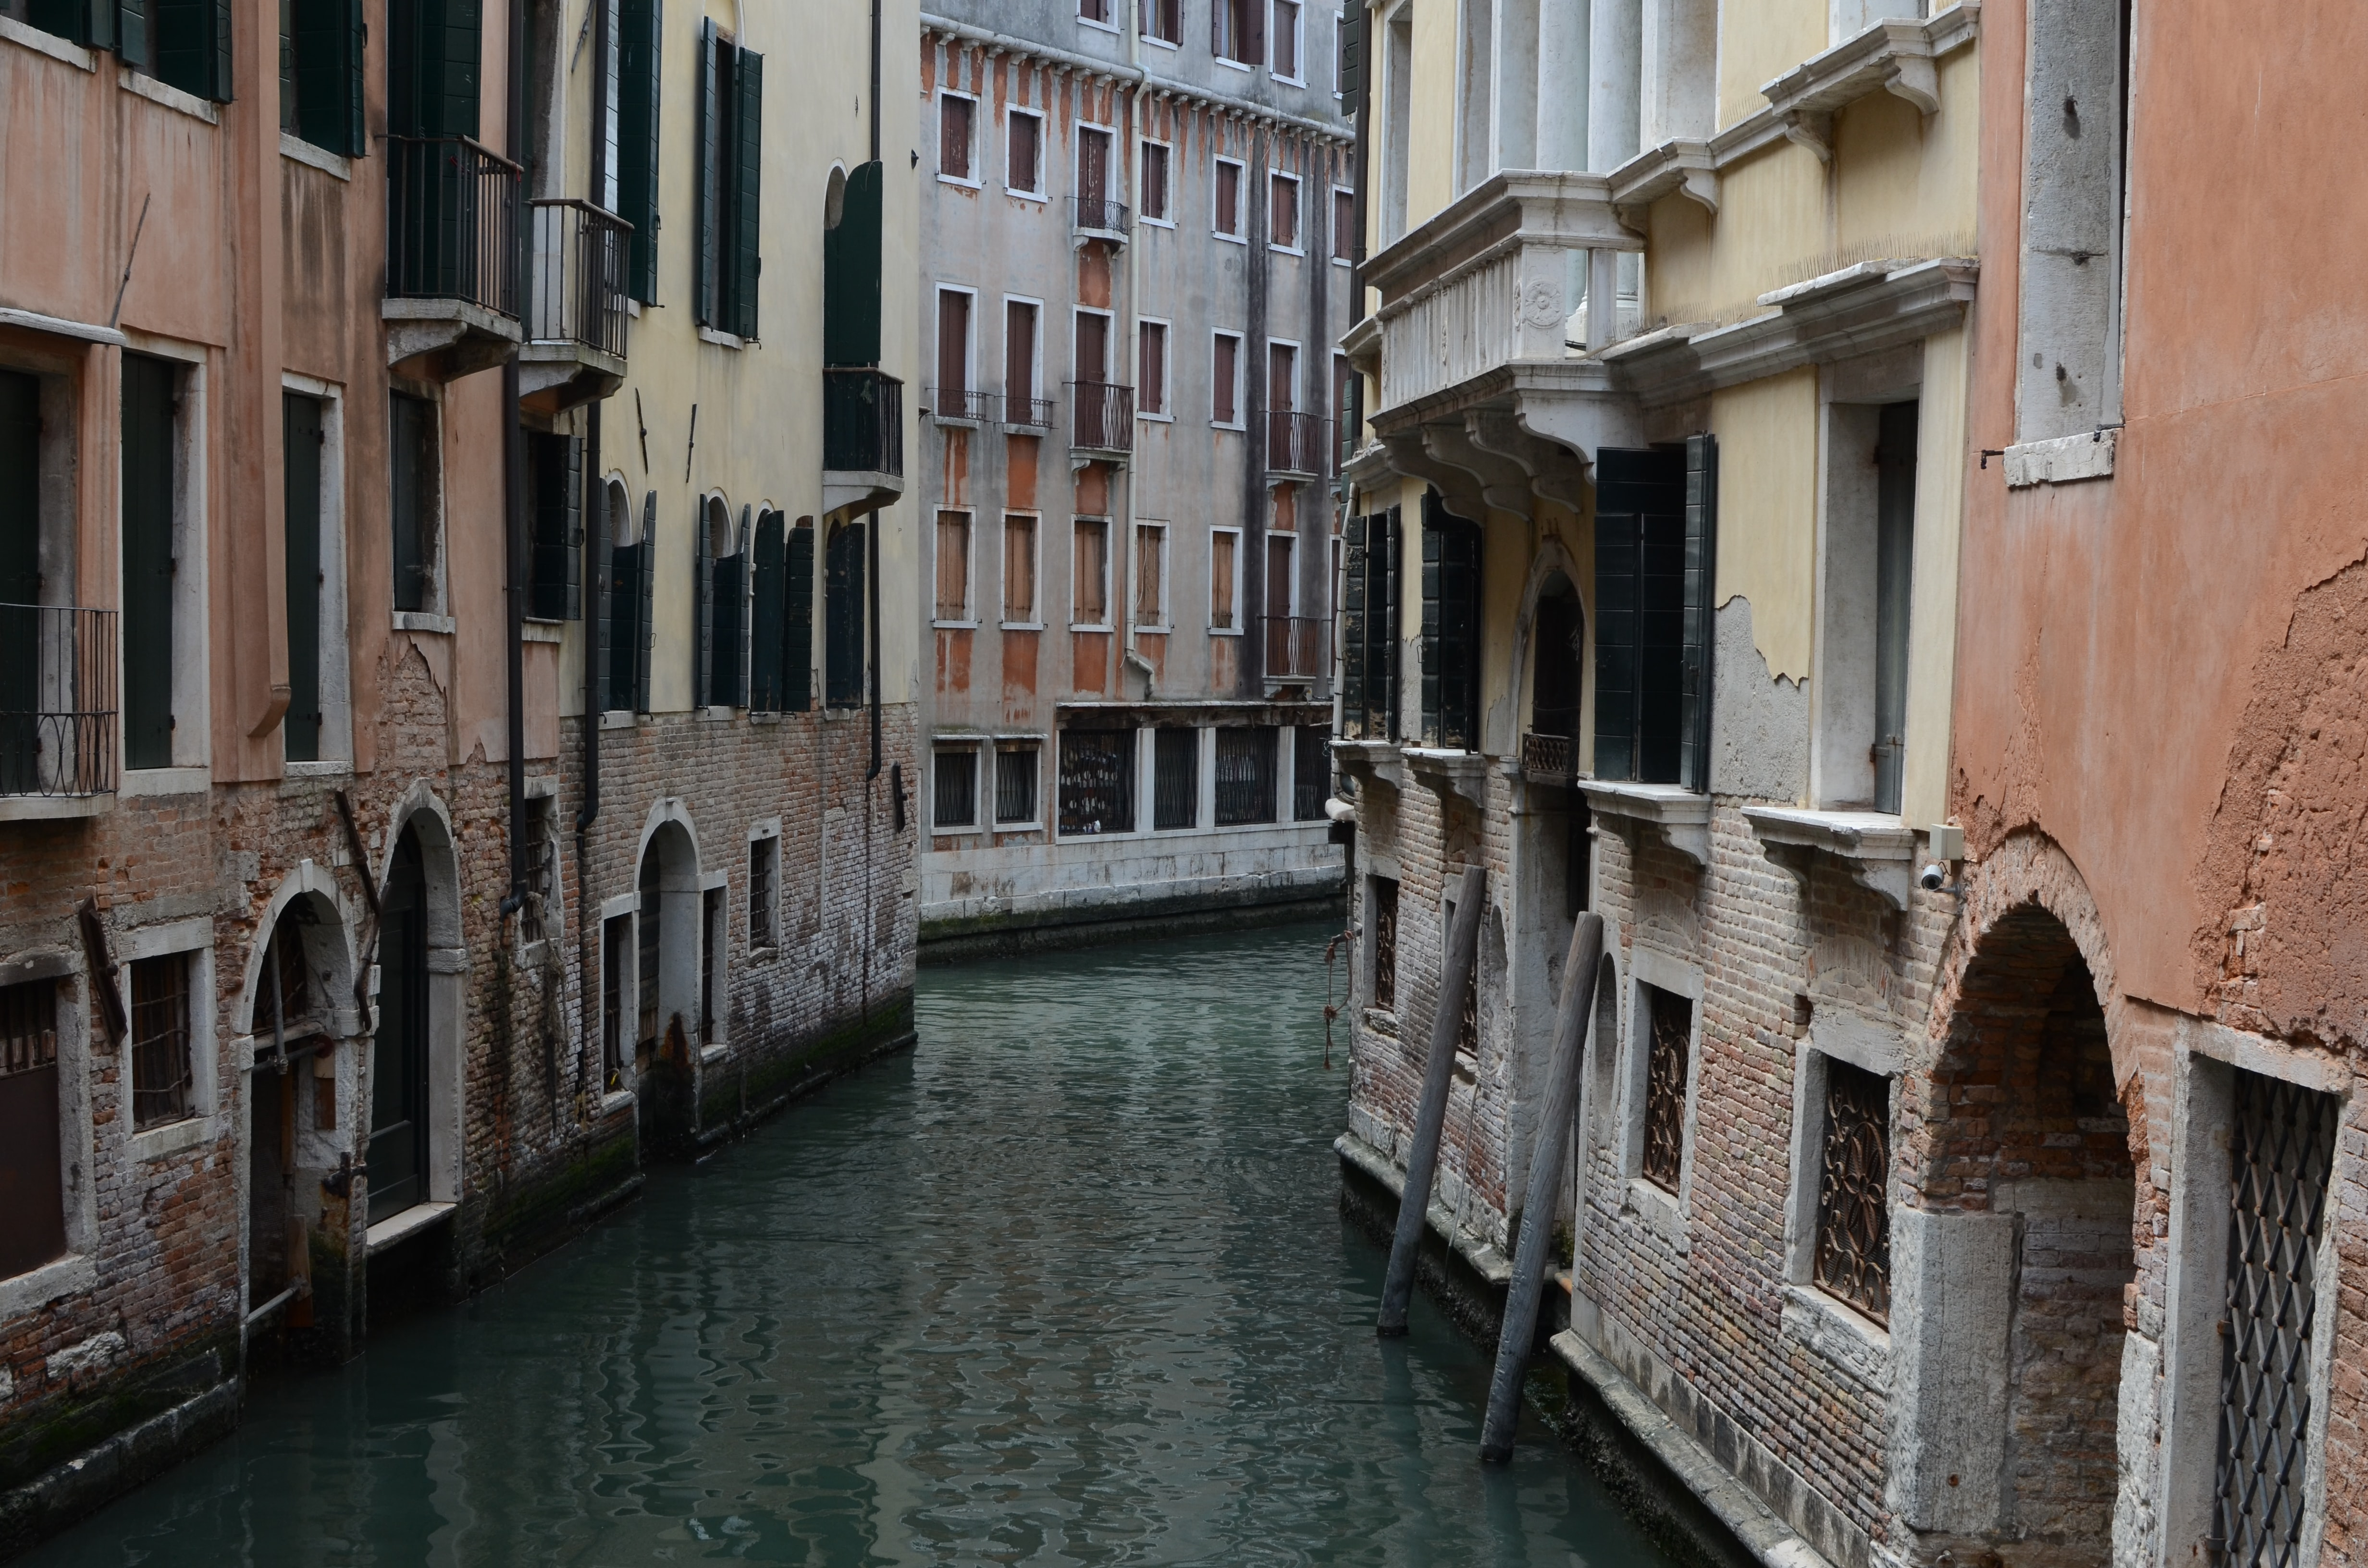 Two old buildings separated by a canal in Venice, Europe.